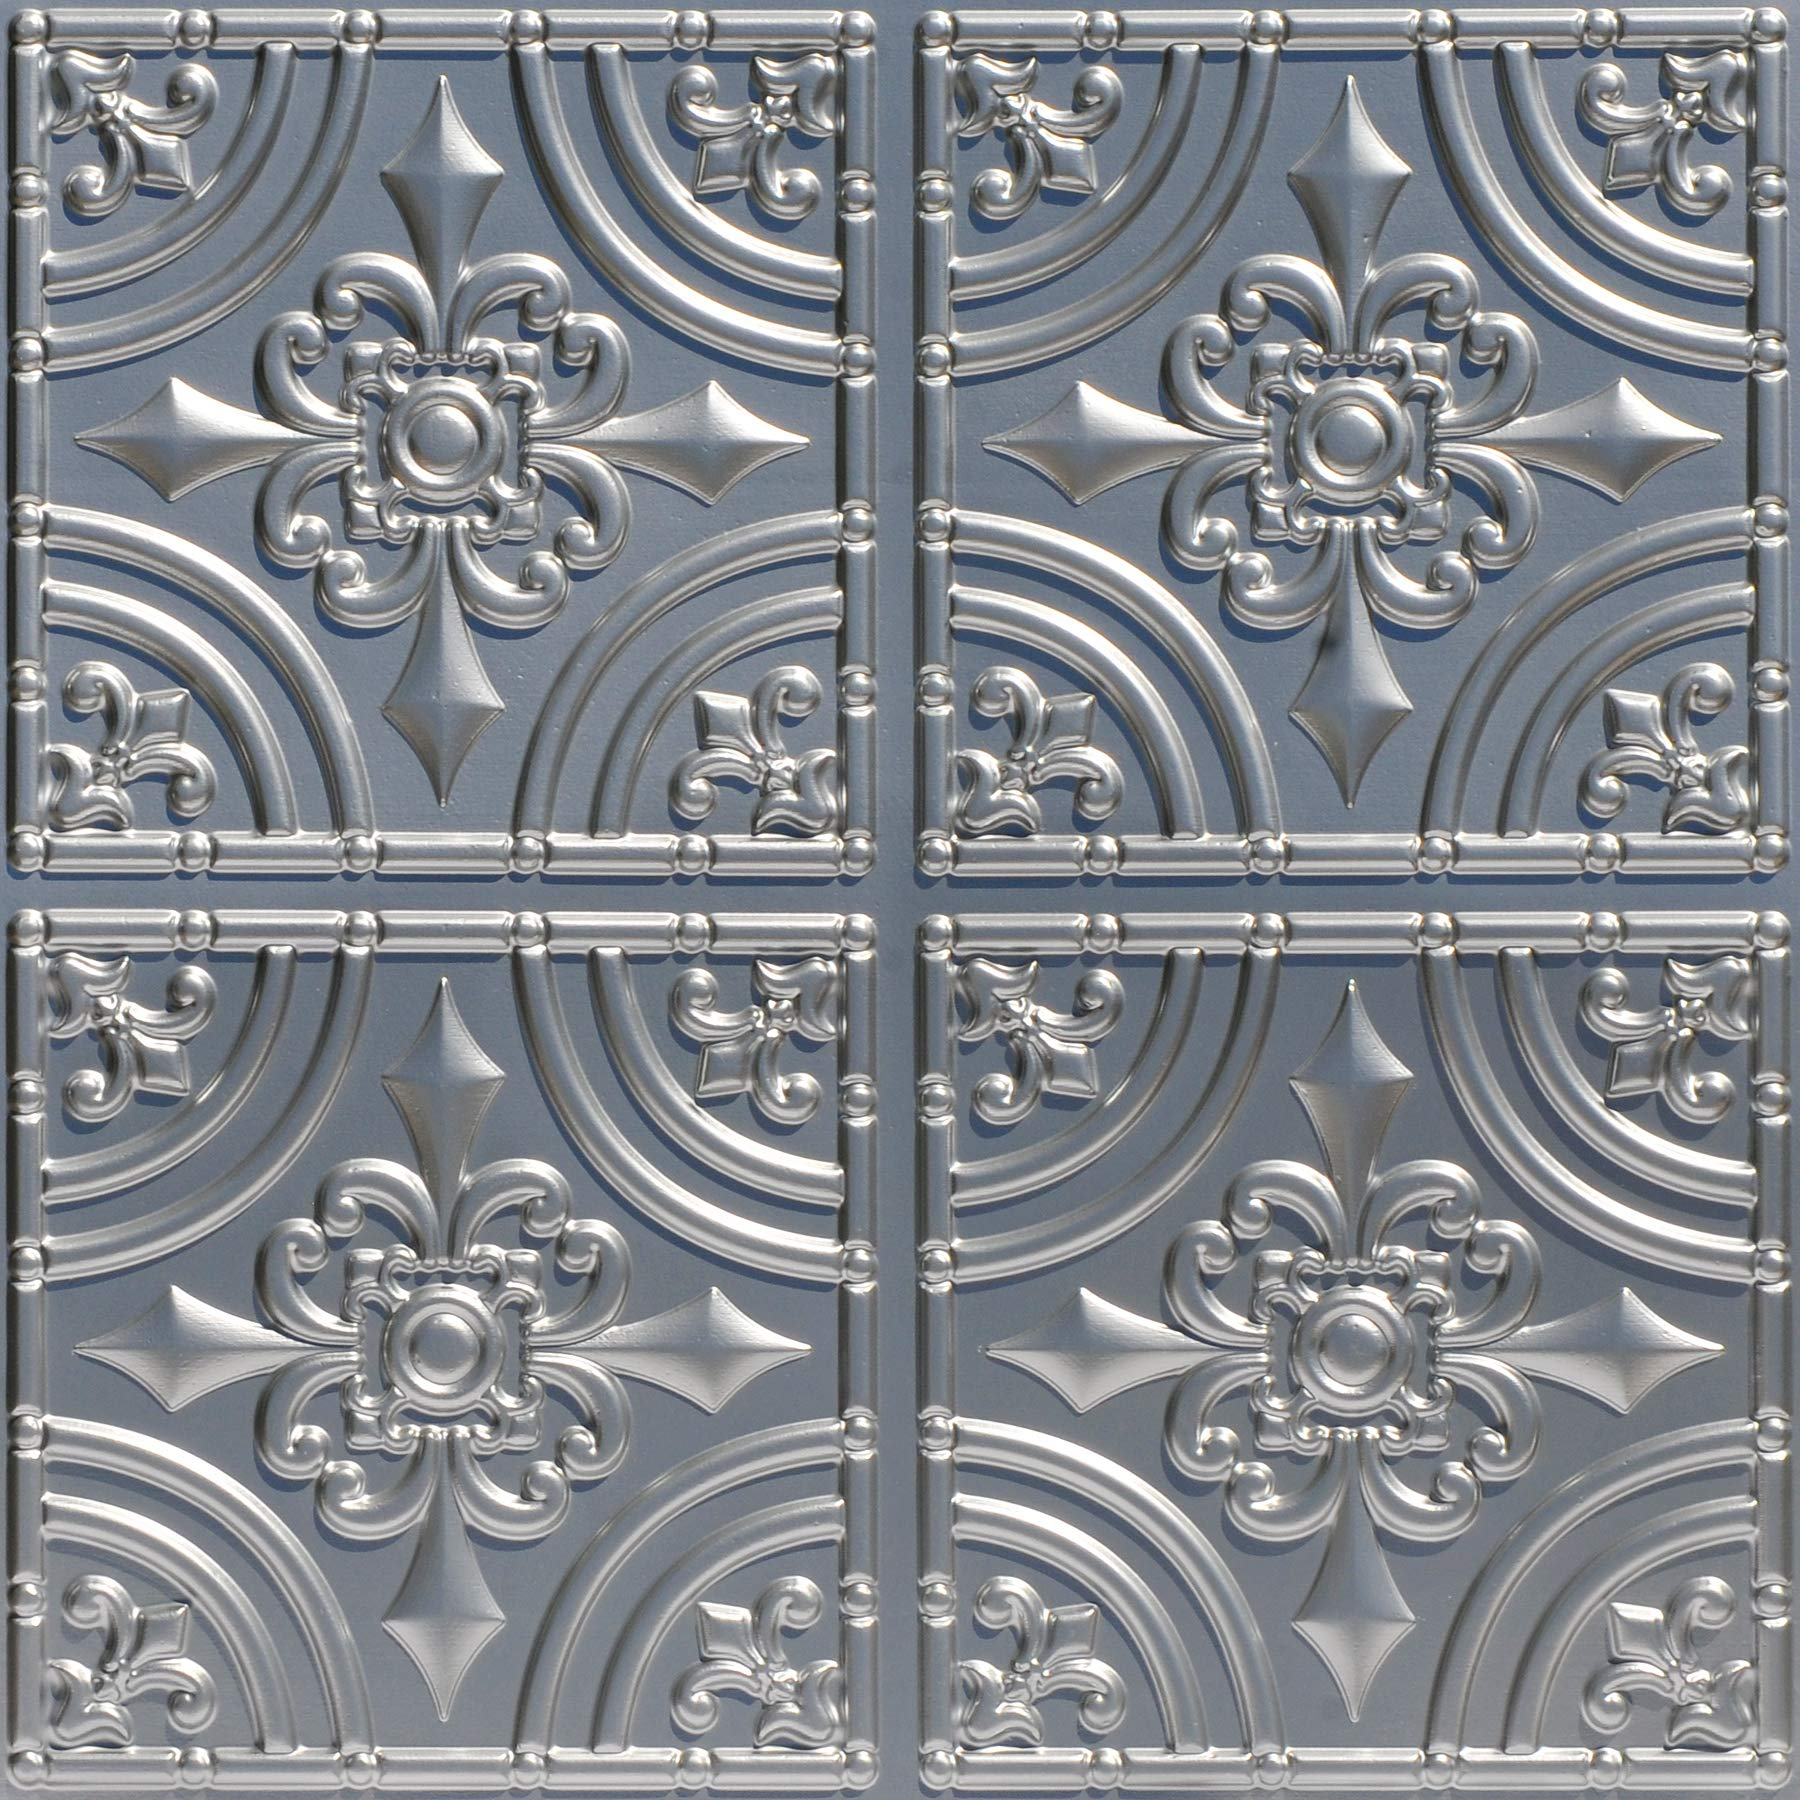 From Plain To Beautiful In Hours 205sr-24x24-25 Wrought Iron Ceiling Tile Siver 25